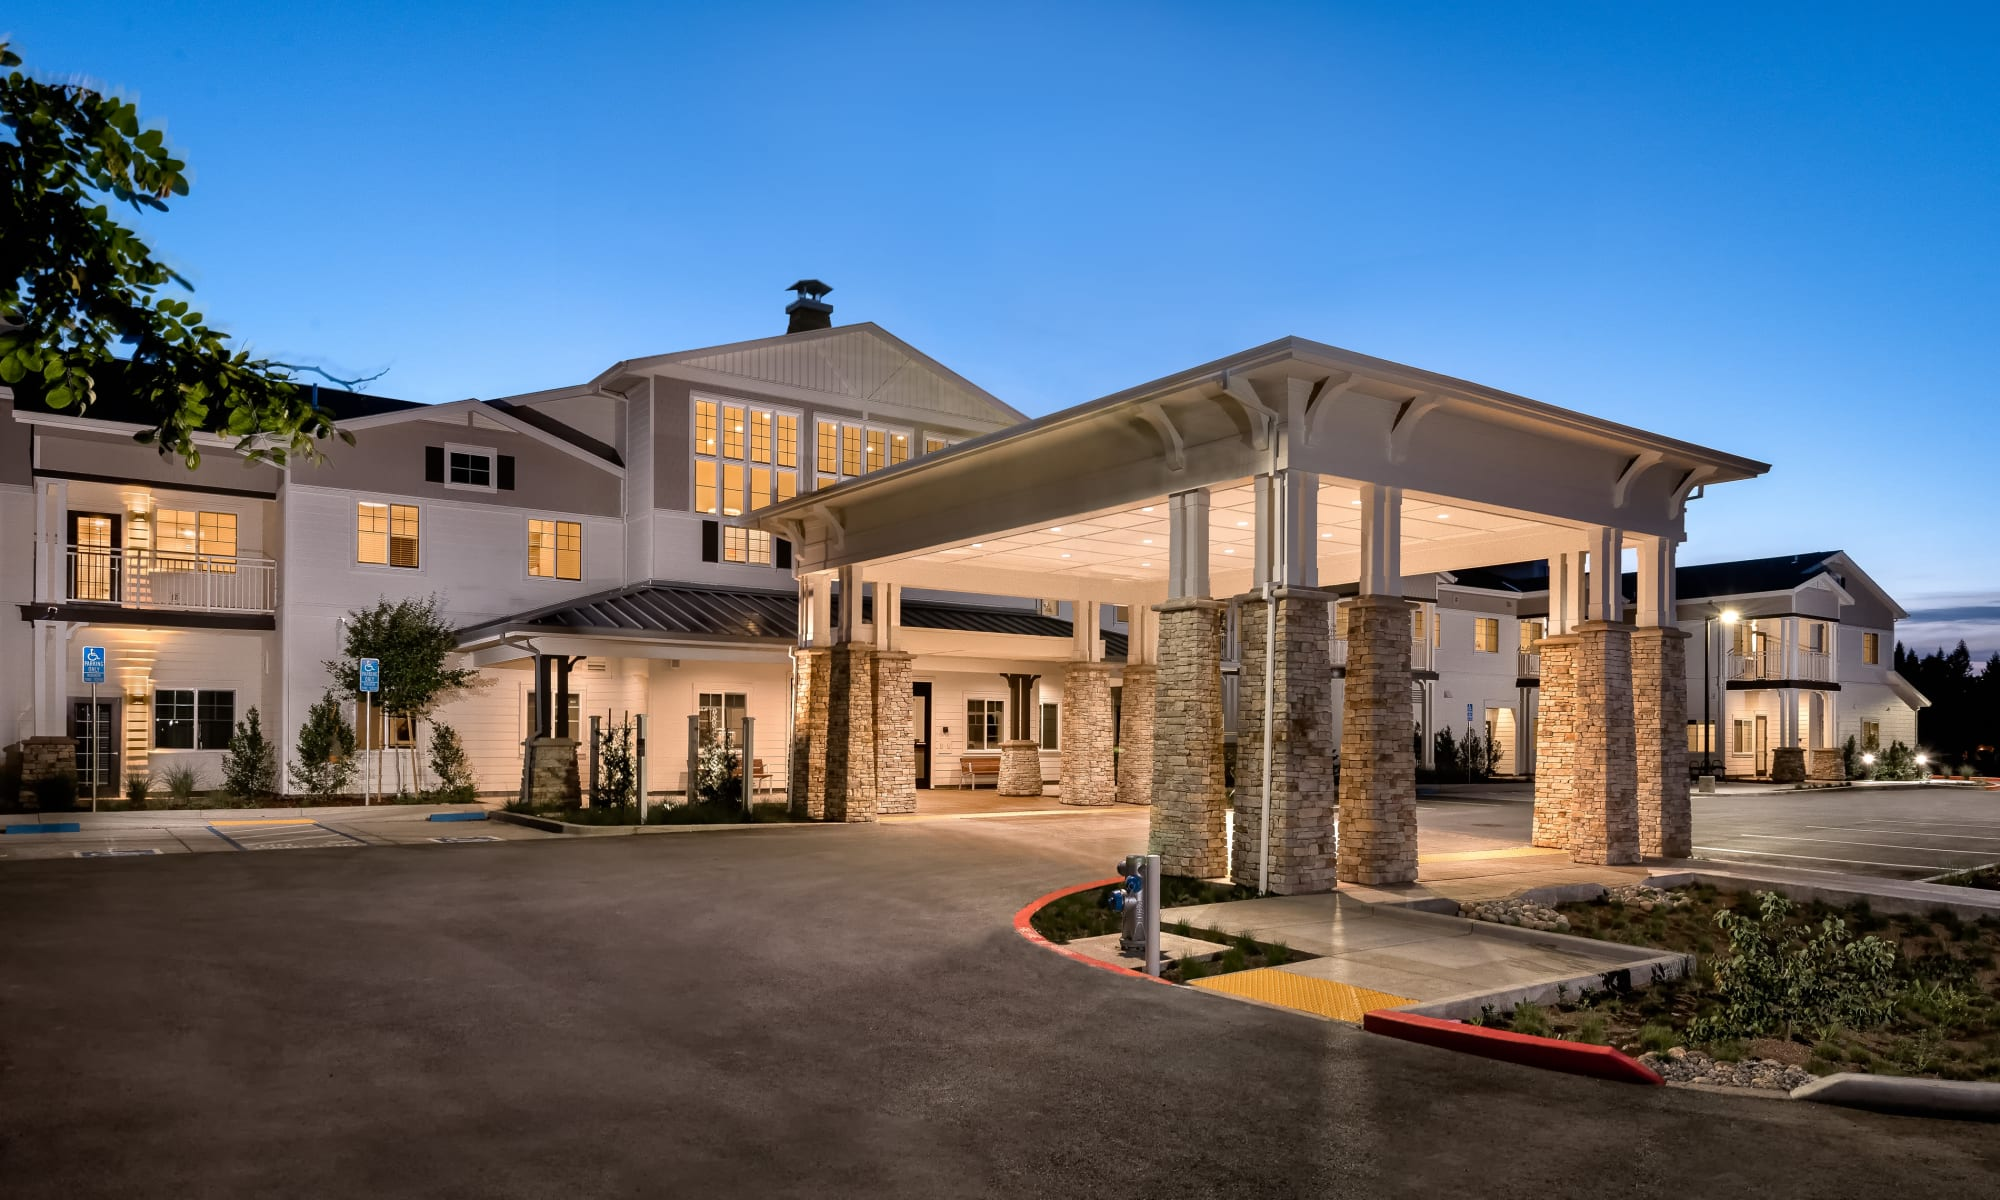 Building view of Clearwater at Sonoma Hills in Rohnert Park, California